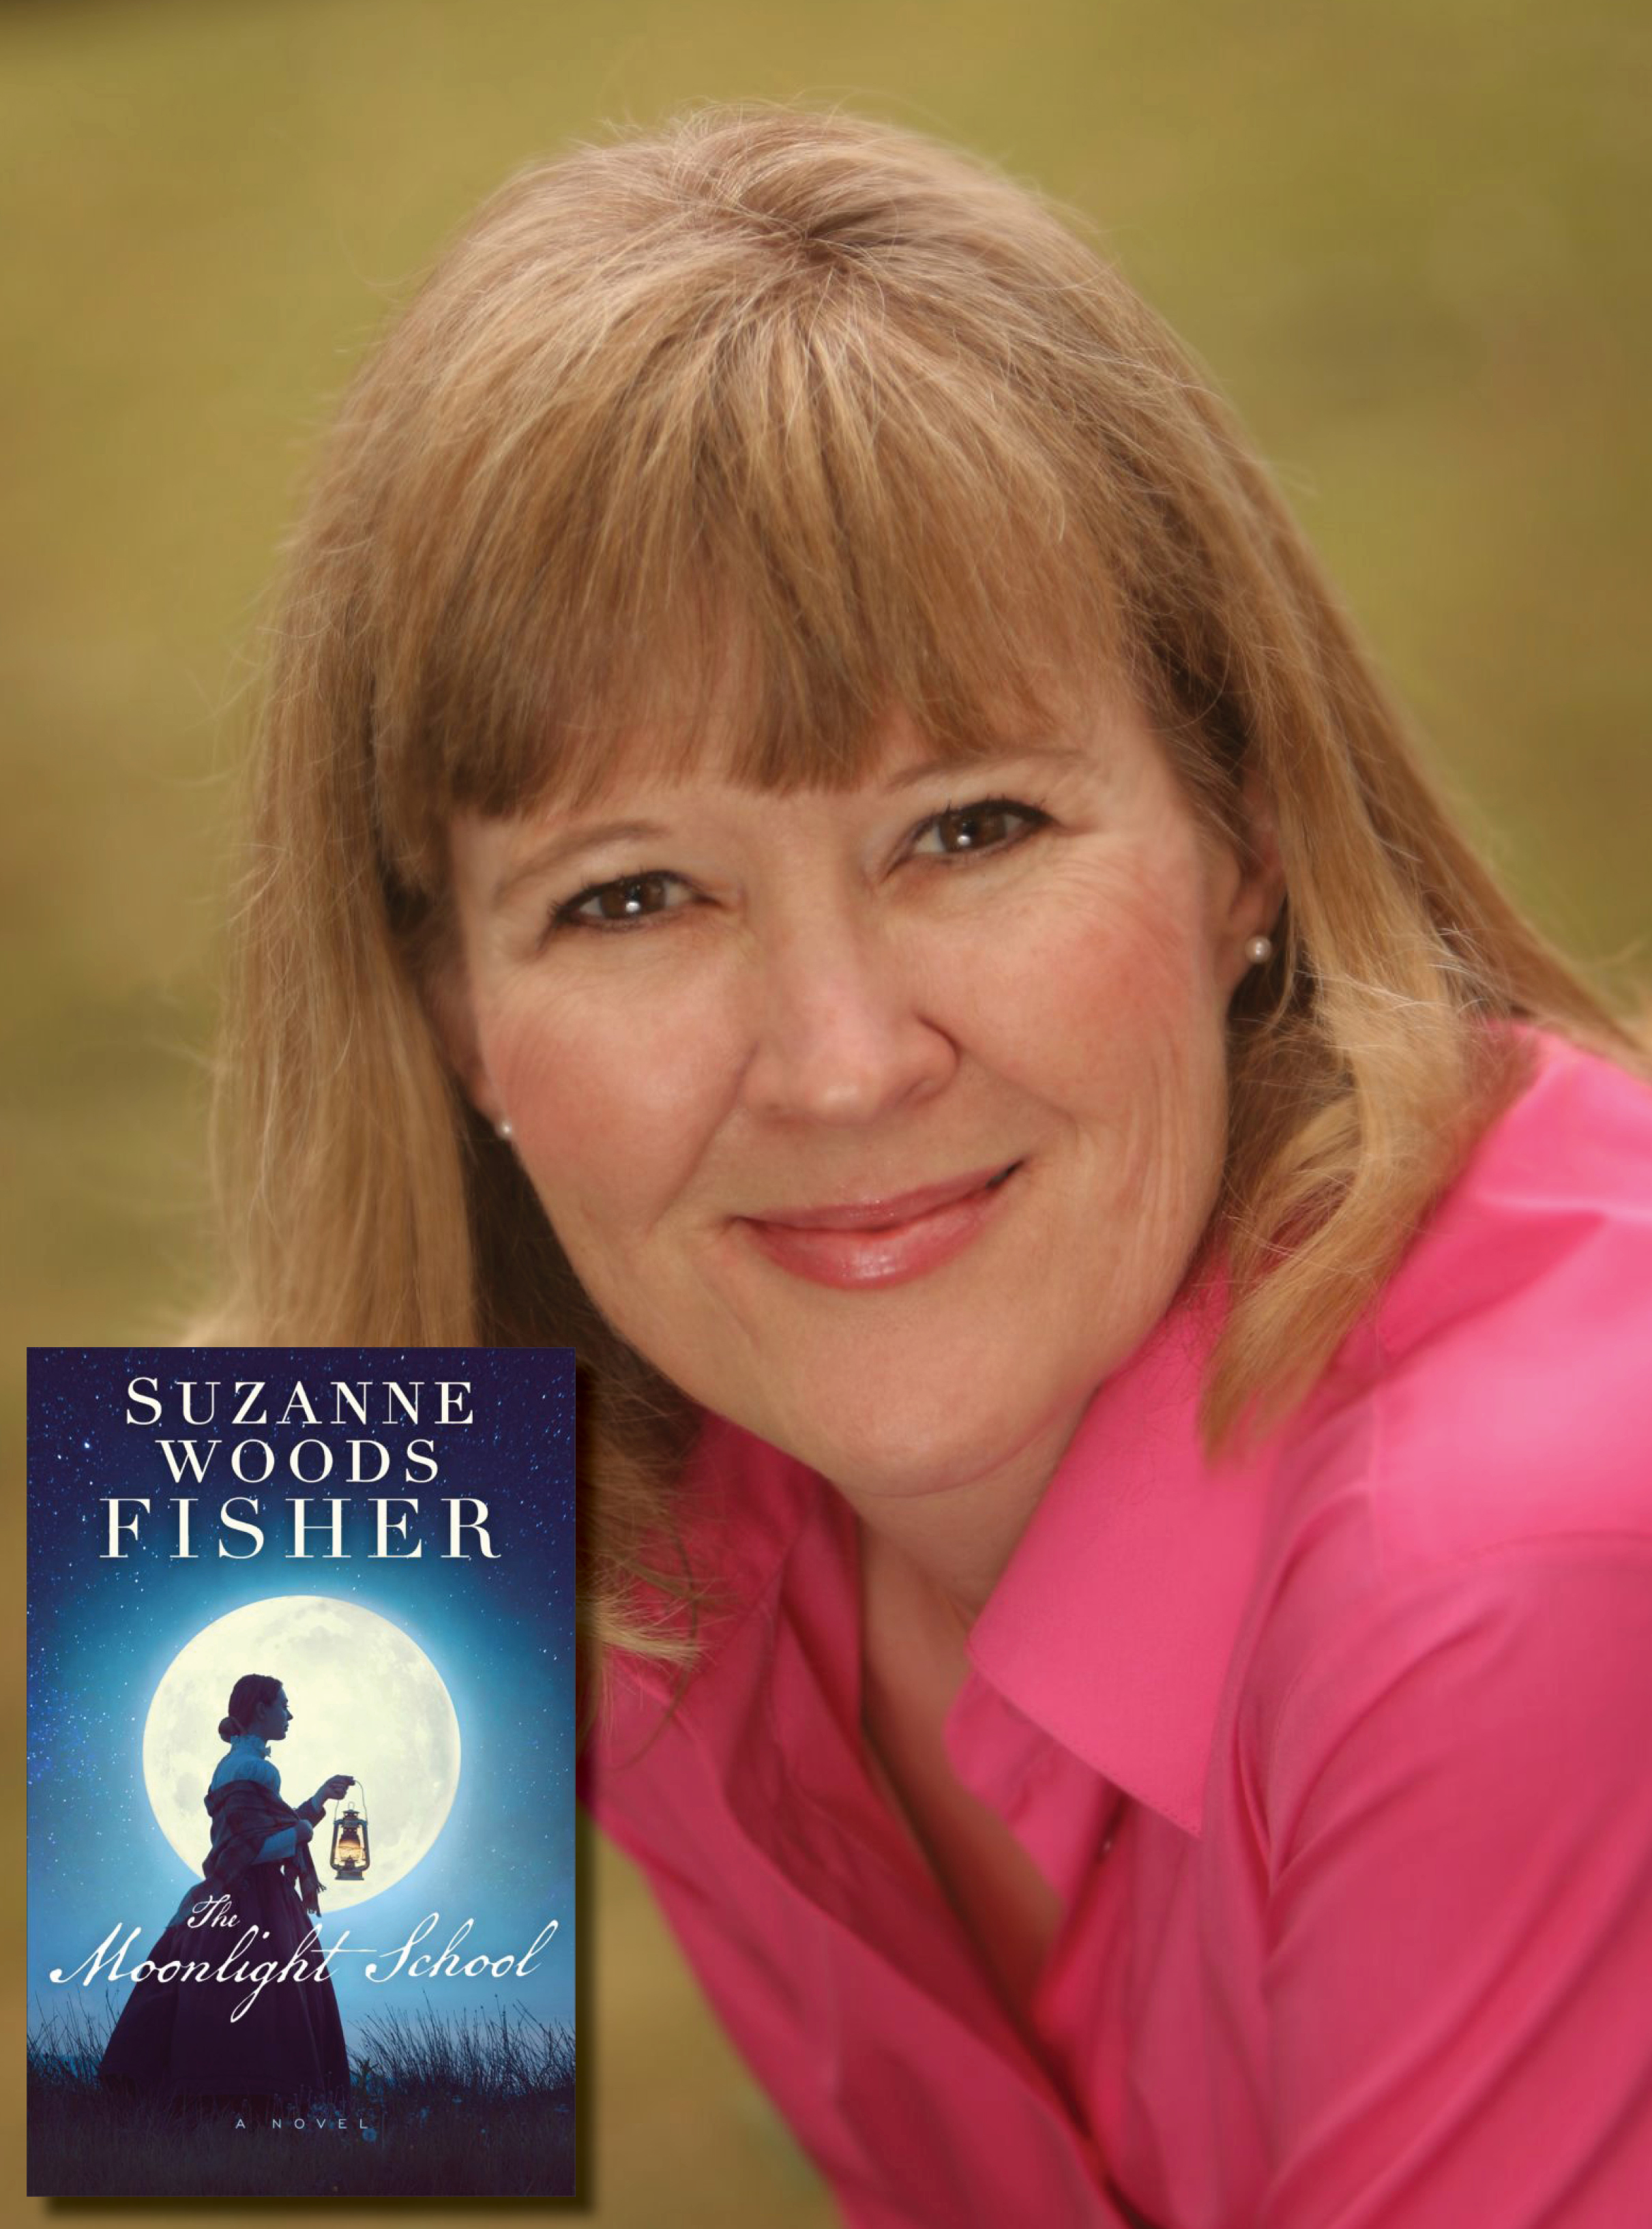 Best-selling Amish author will visit FDLPL virtually